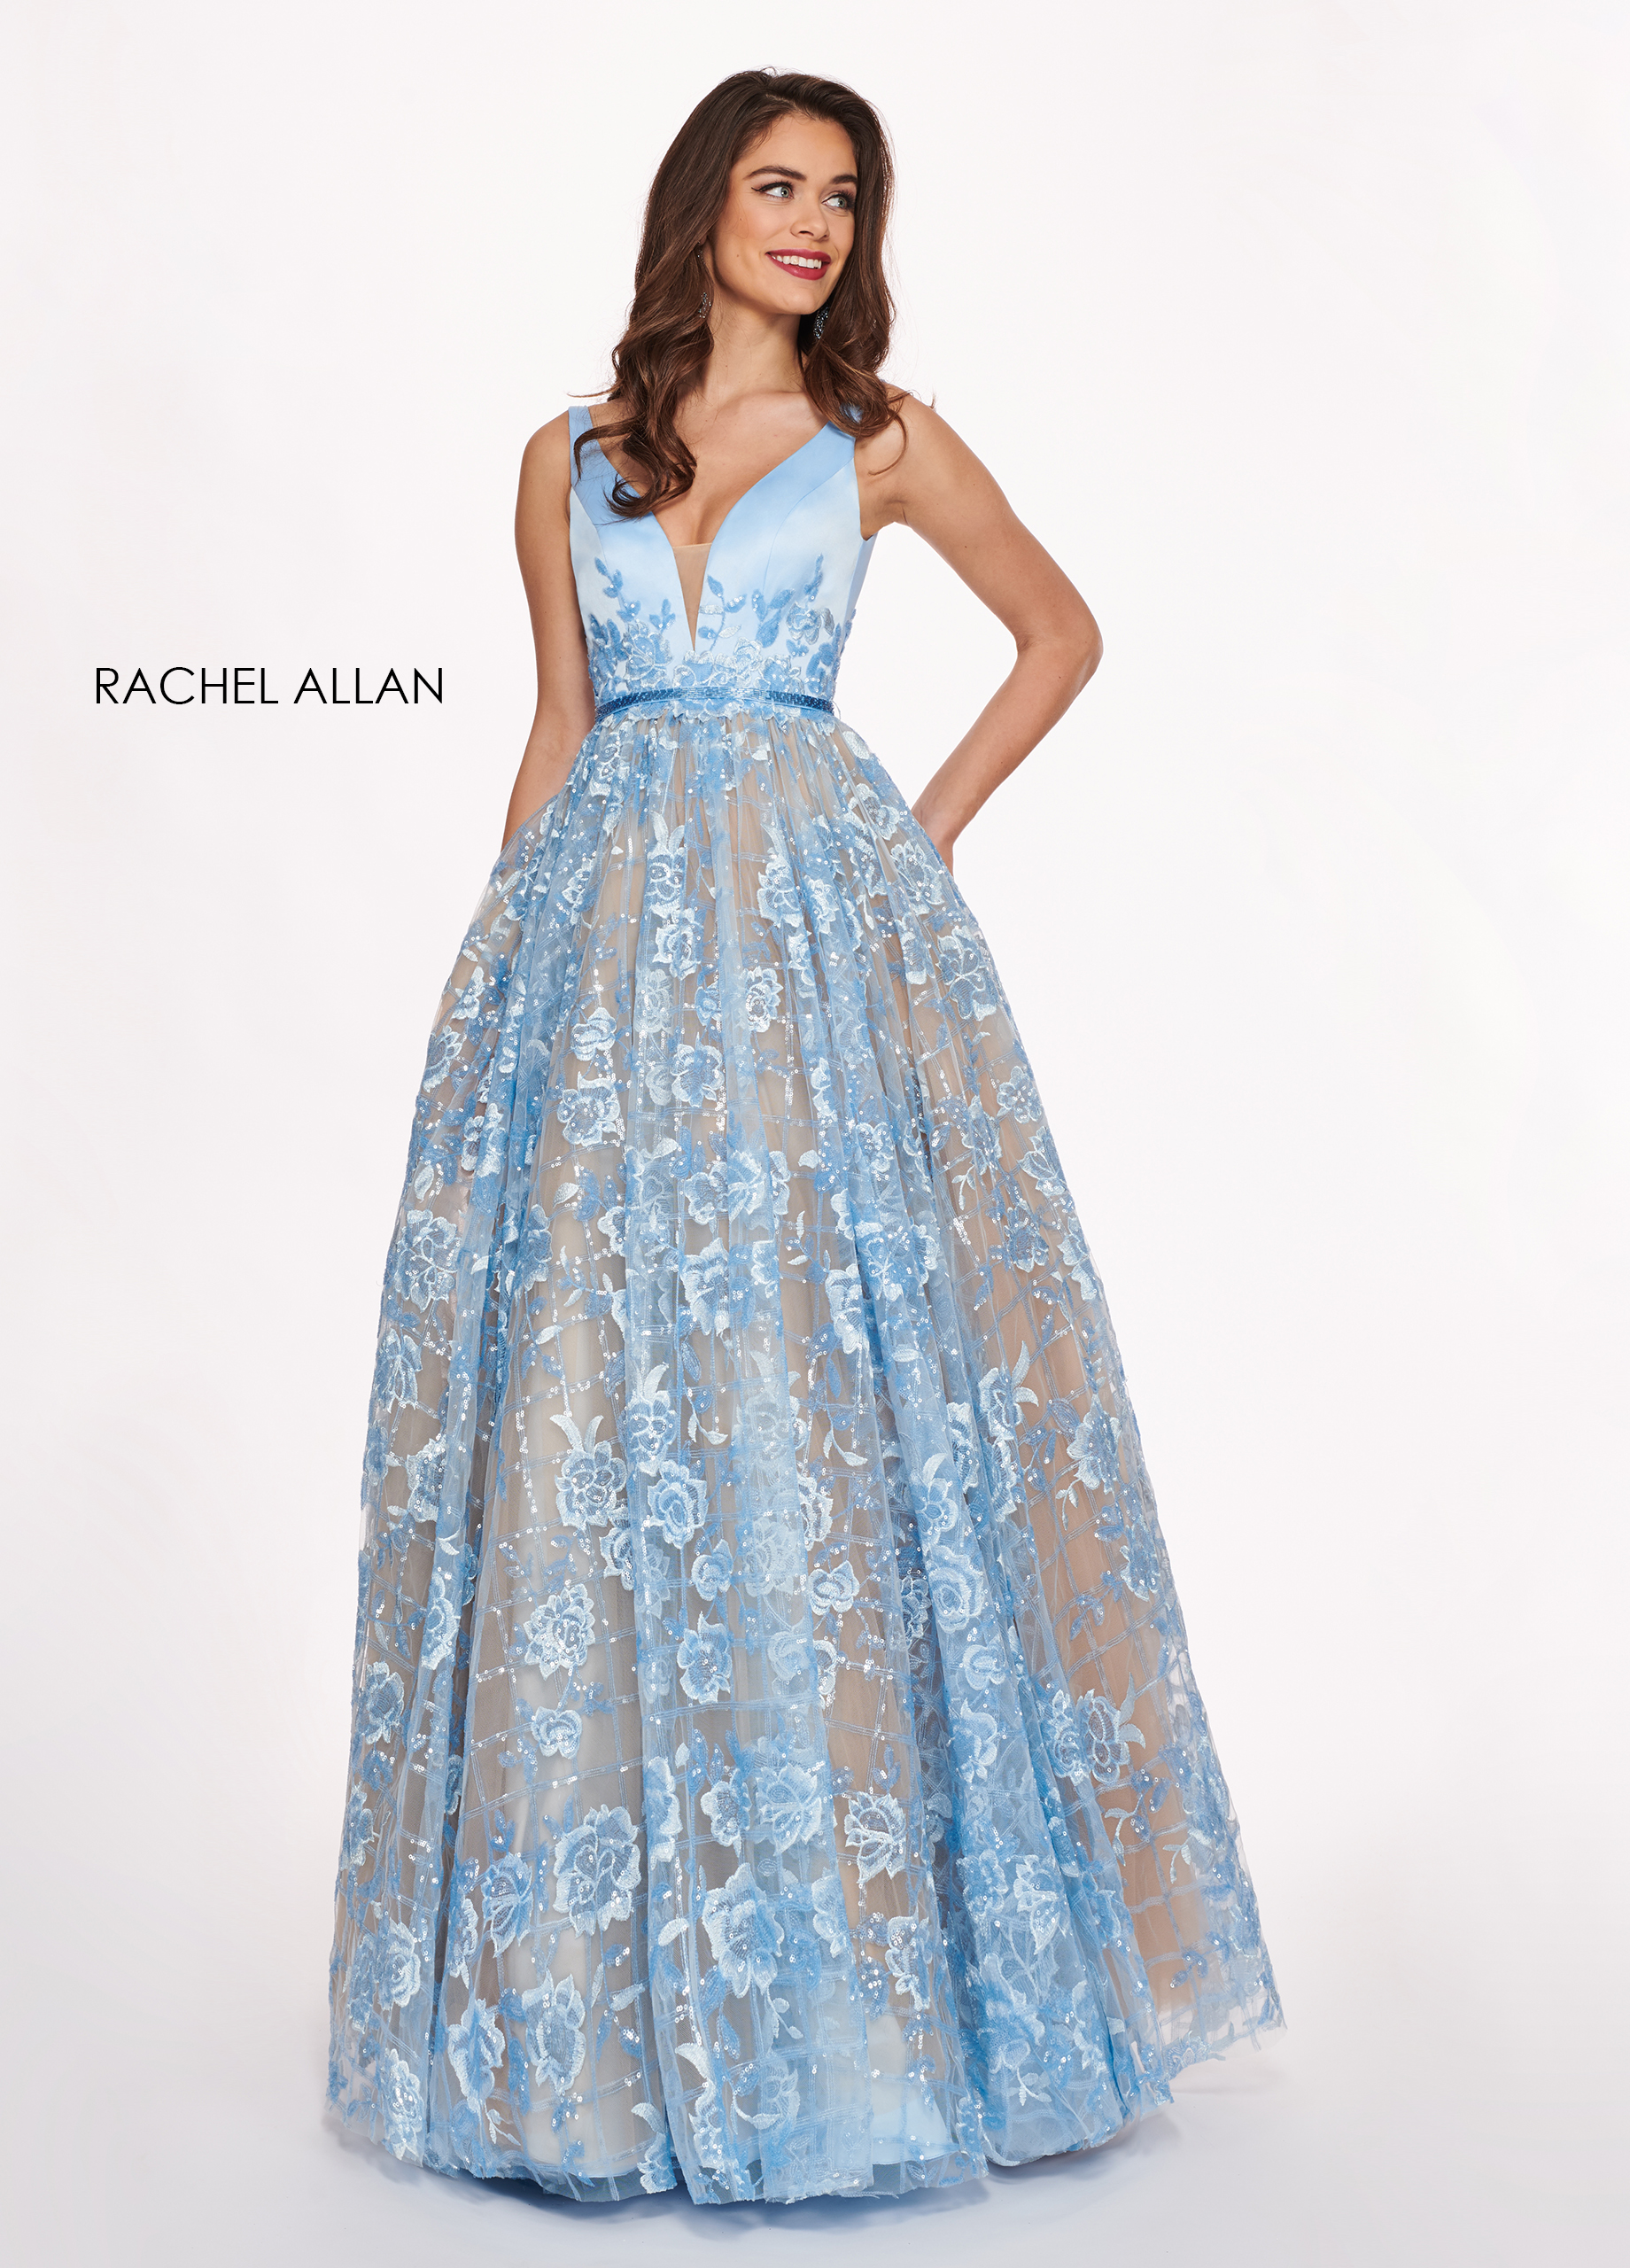 V-Neck Ball Gowns Prom Dresses in Blue Color